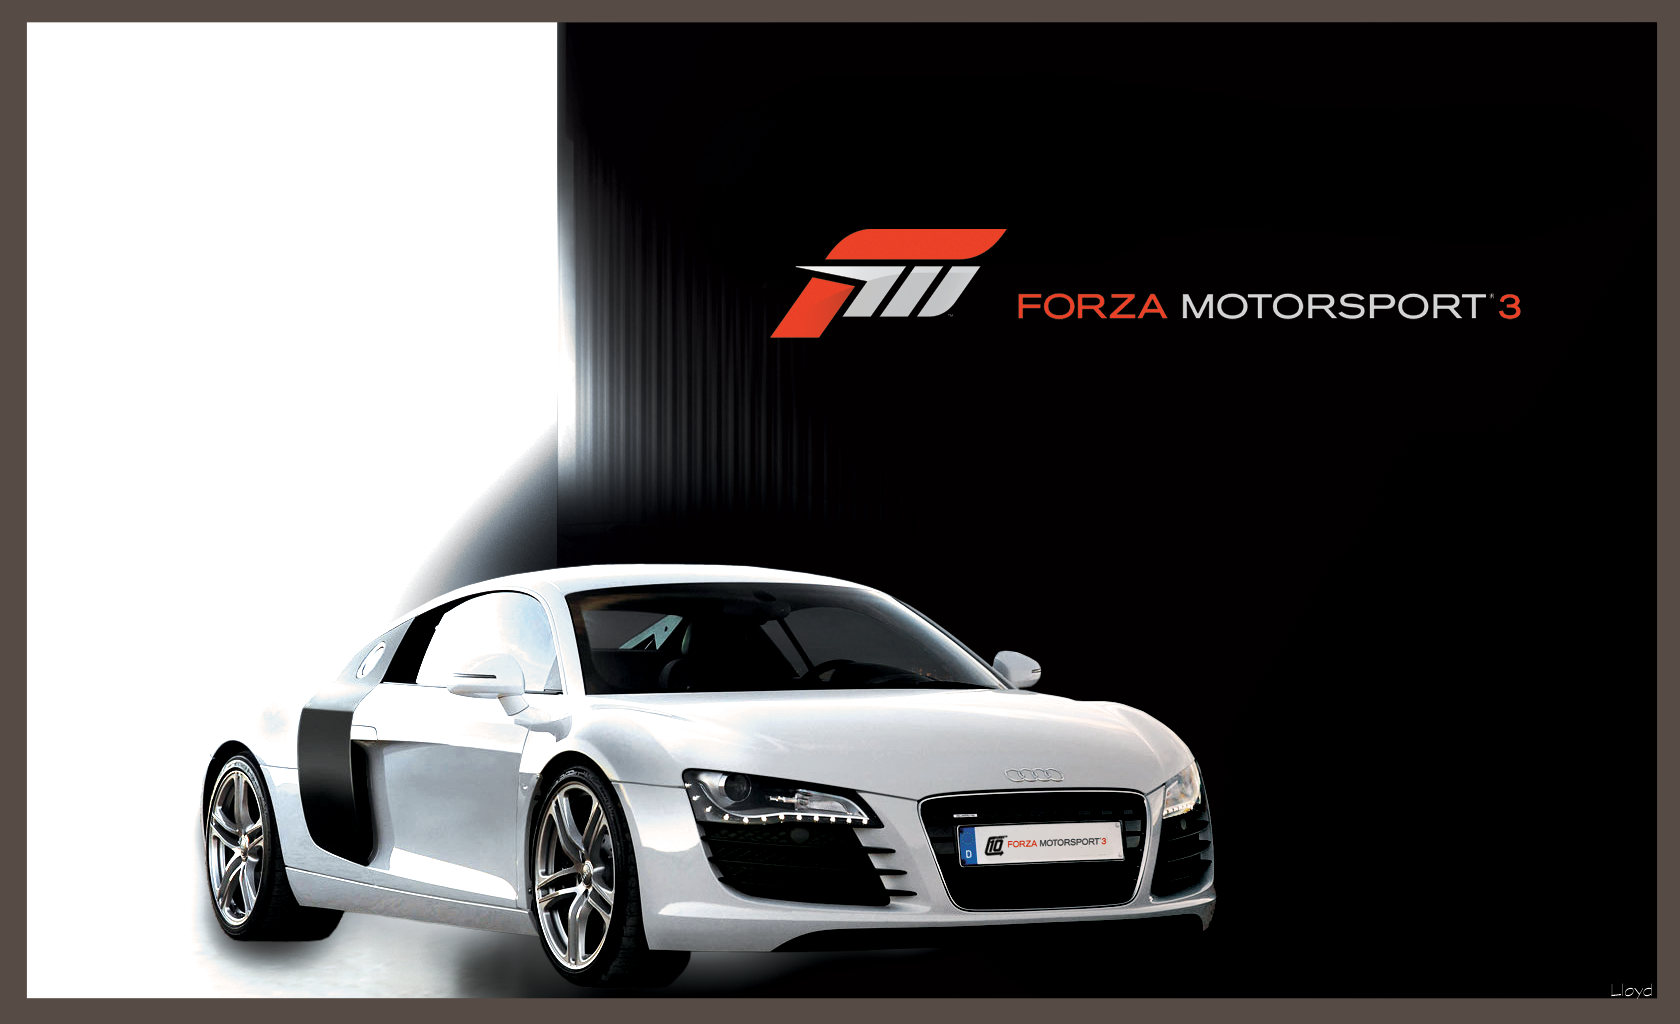 Forza Motorsport 3 Wallpaper by igotgame1075 1680x1024